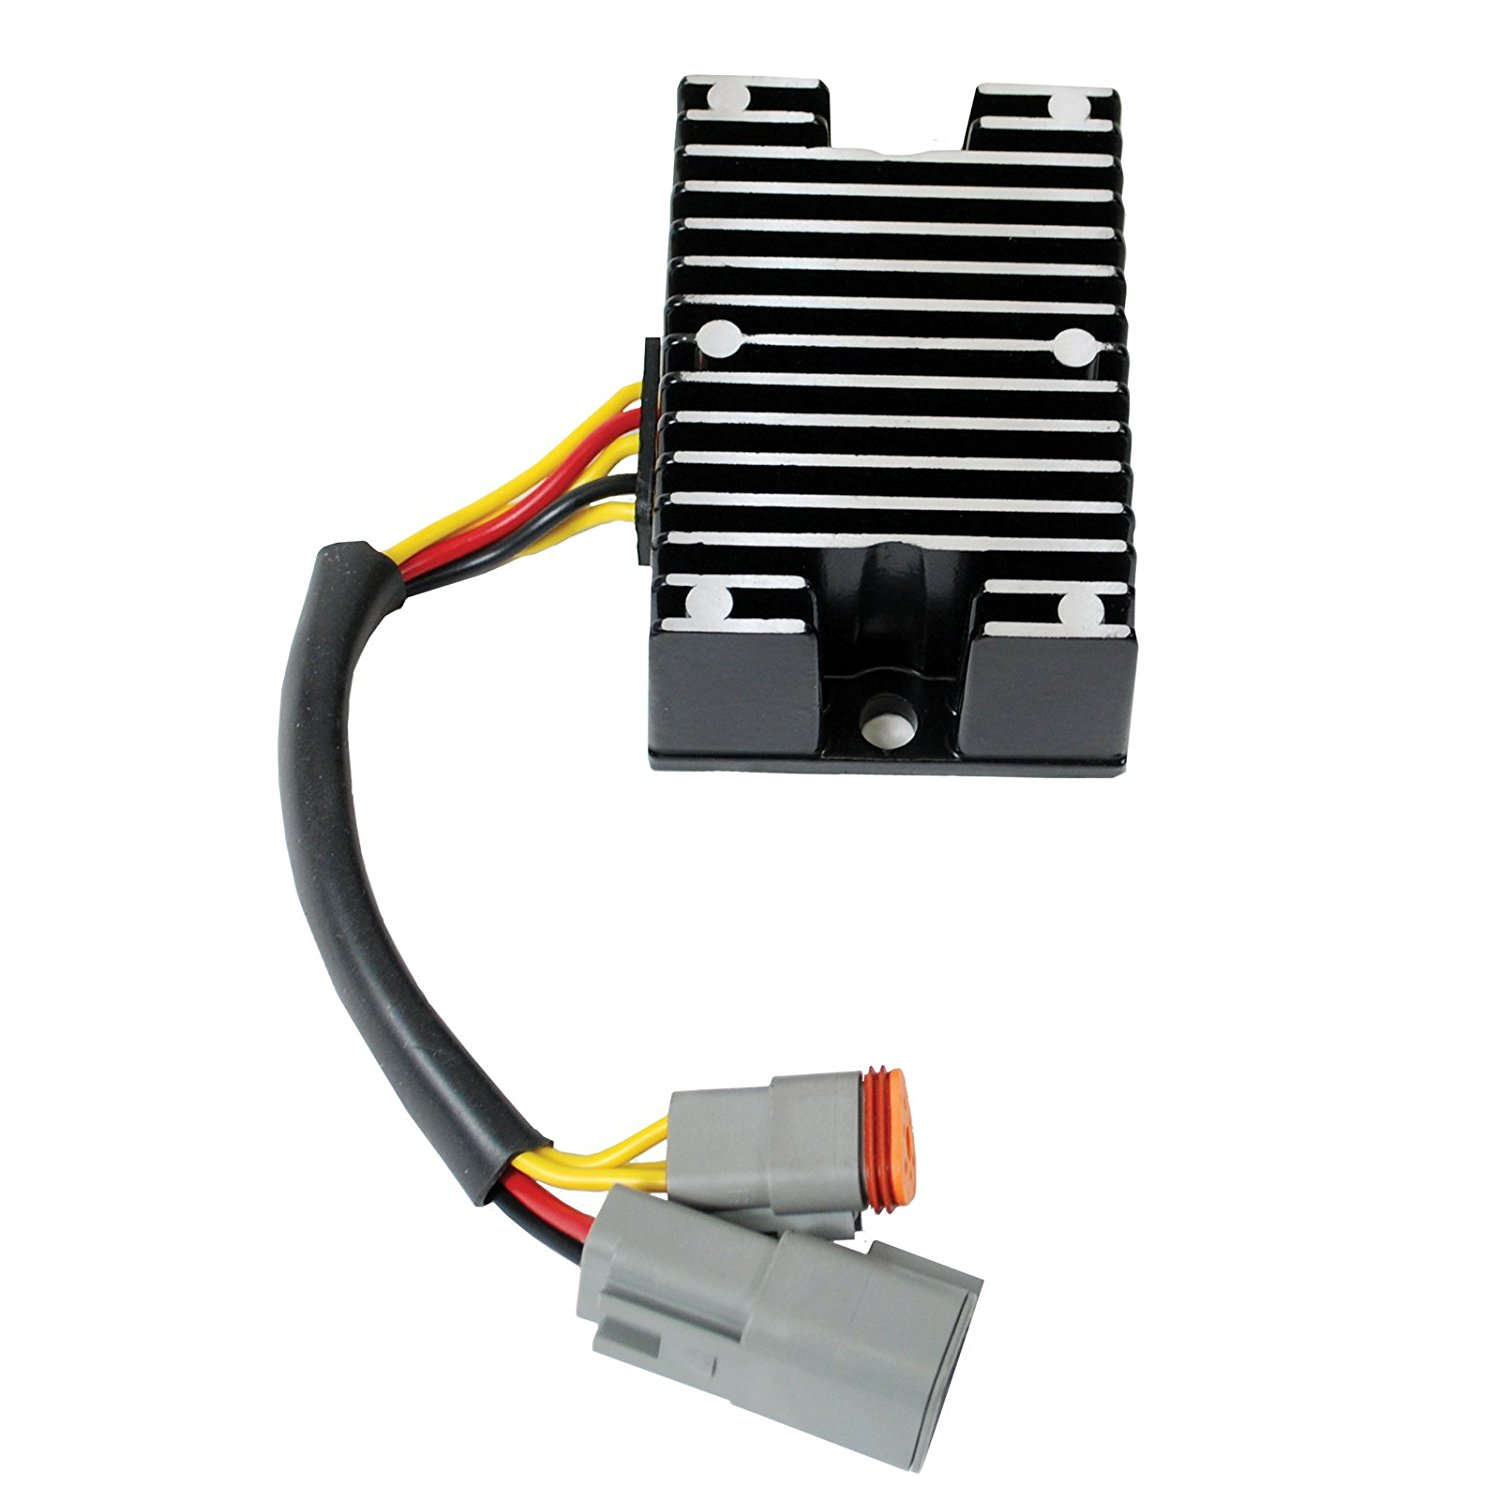 Sea Doo voltage regulator rectifier GTX 4-Tec /GTX 4-Tec SC /GTX 4-Tec Ltd /RXP /RXT /3D RFI /GTI LE RFI 278001969 2002 2003 2004 2005 2006 2007